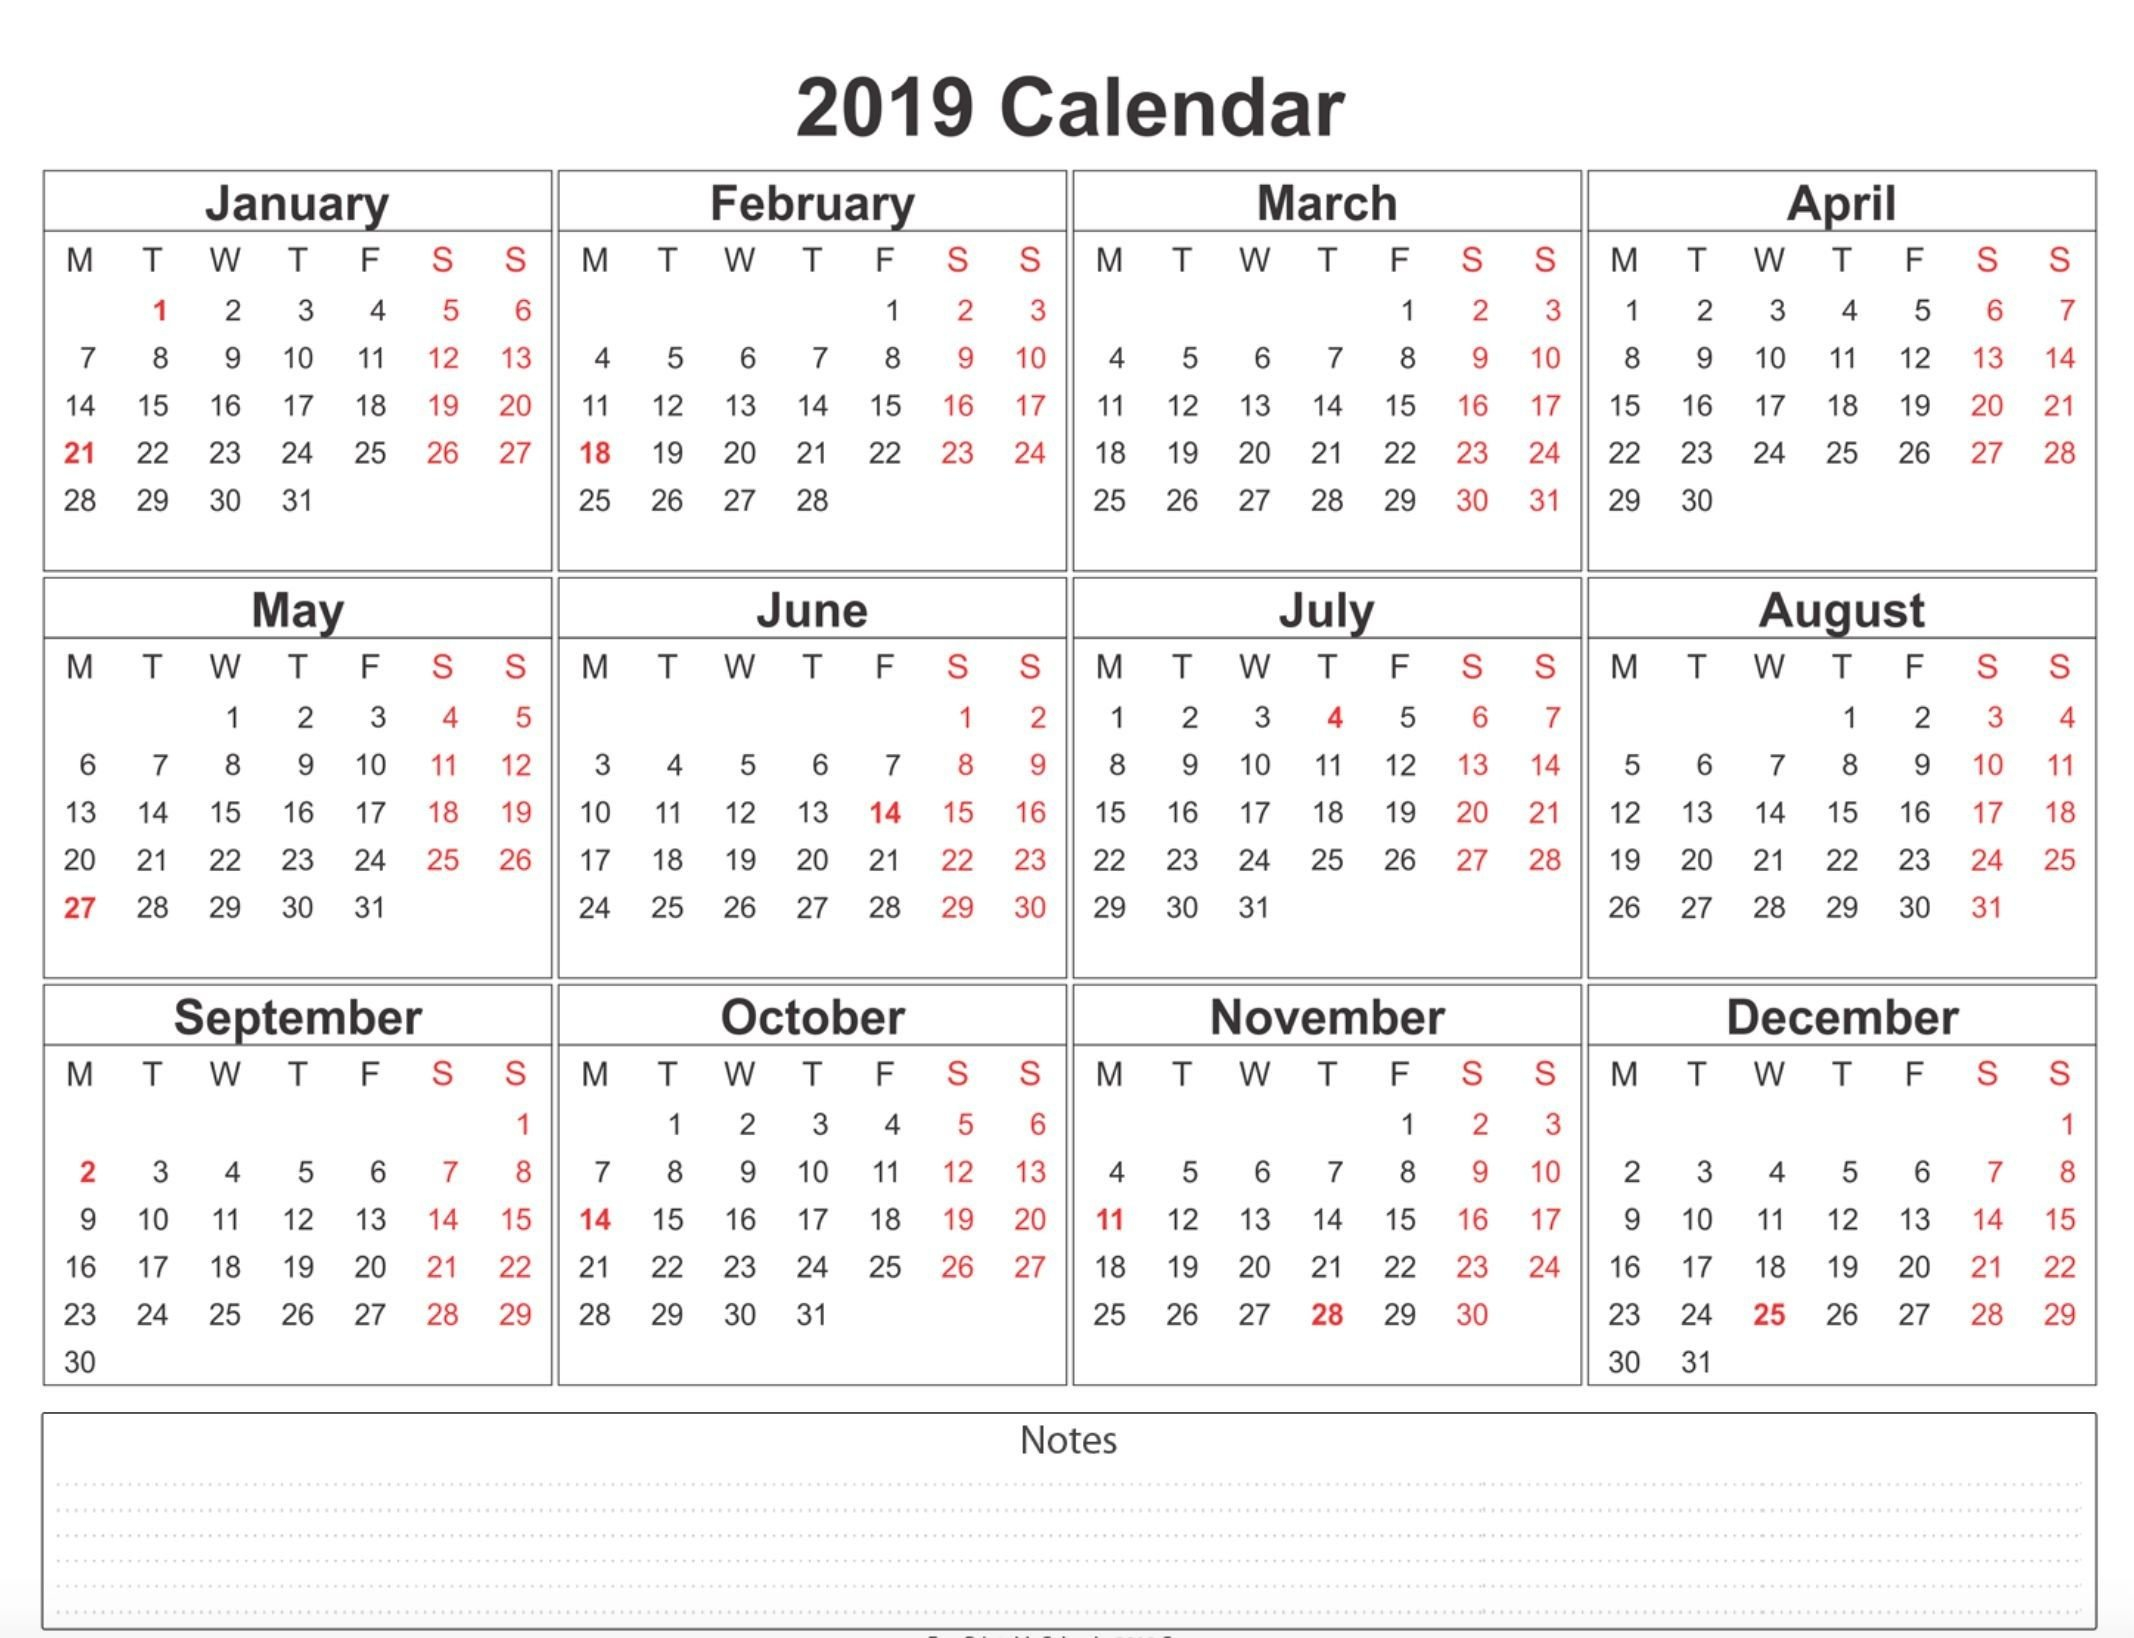 2019 Weekly Calendar Printable | 2019 Calendars | 12 Month Calendar Calendar 2019 With Holidays Usa Printable